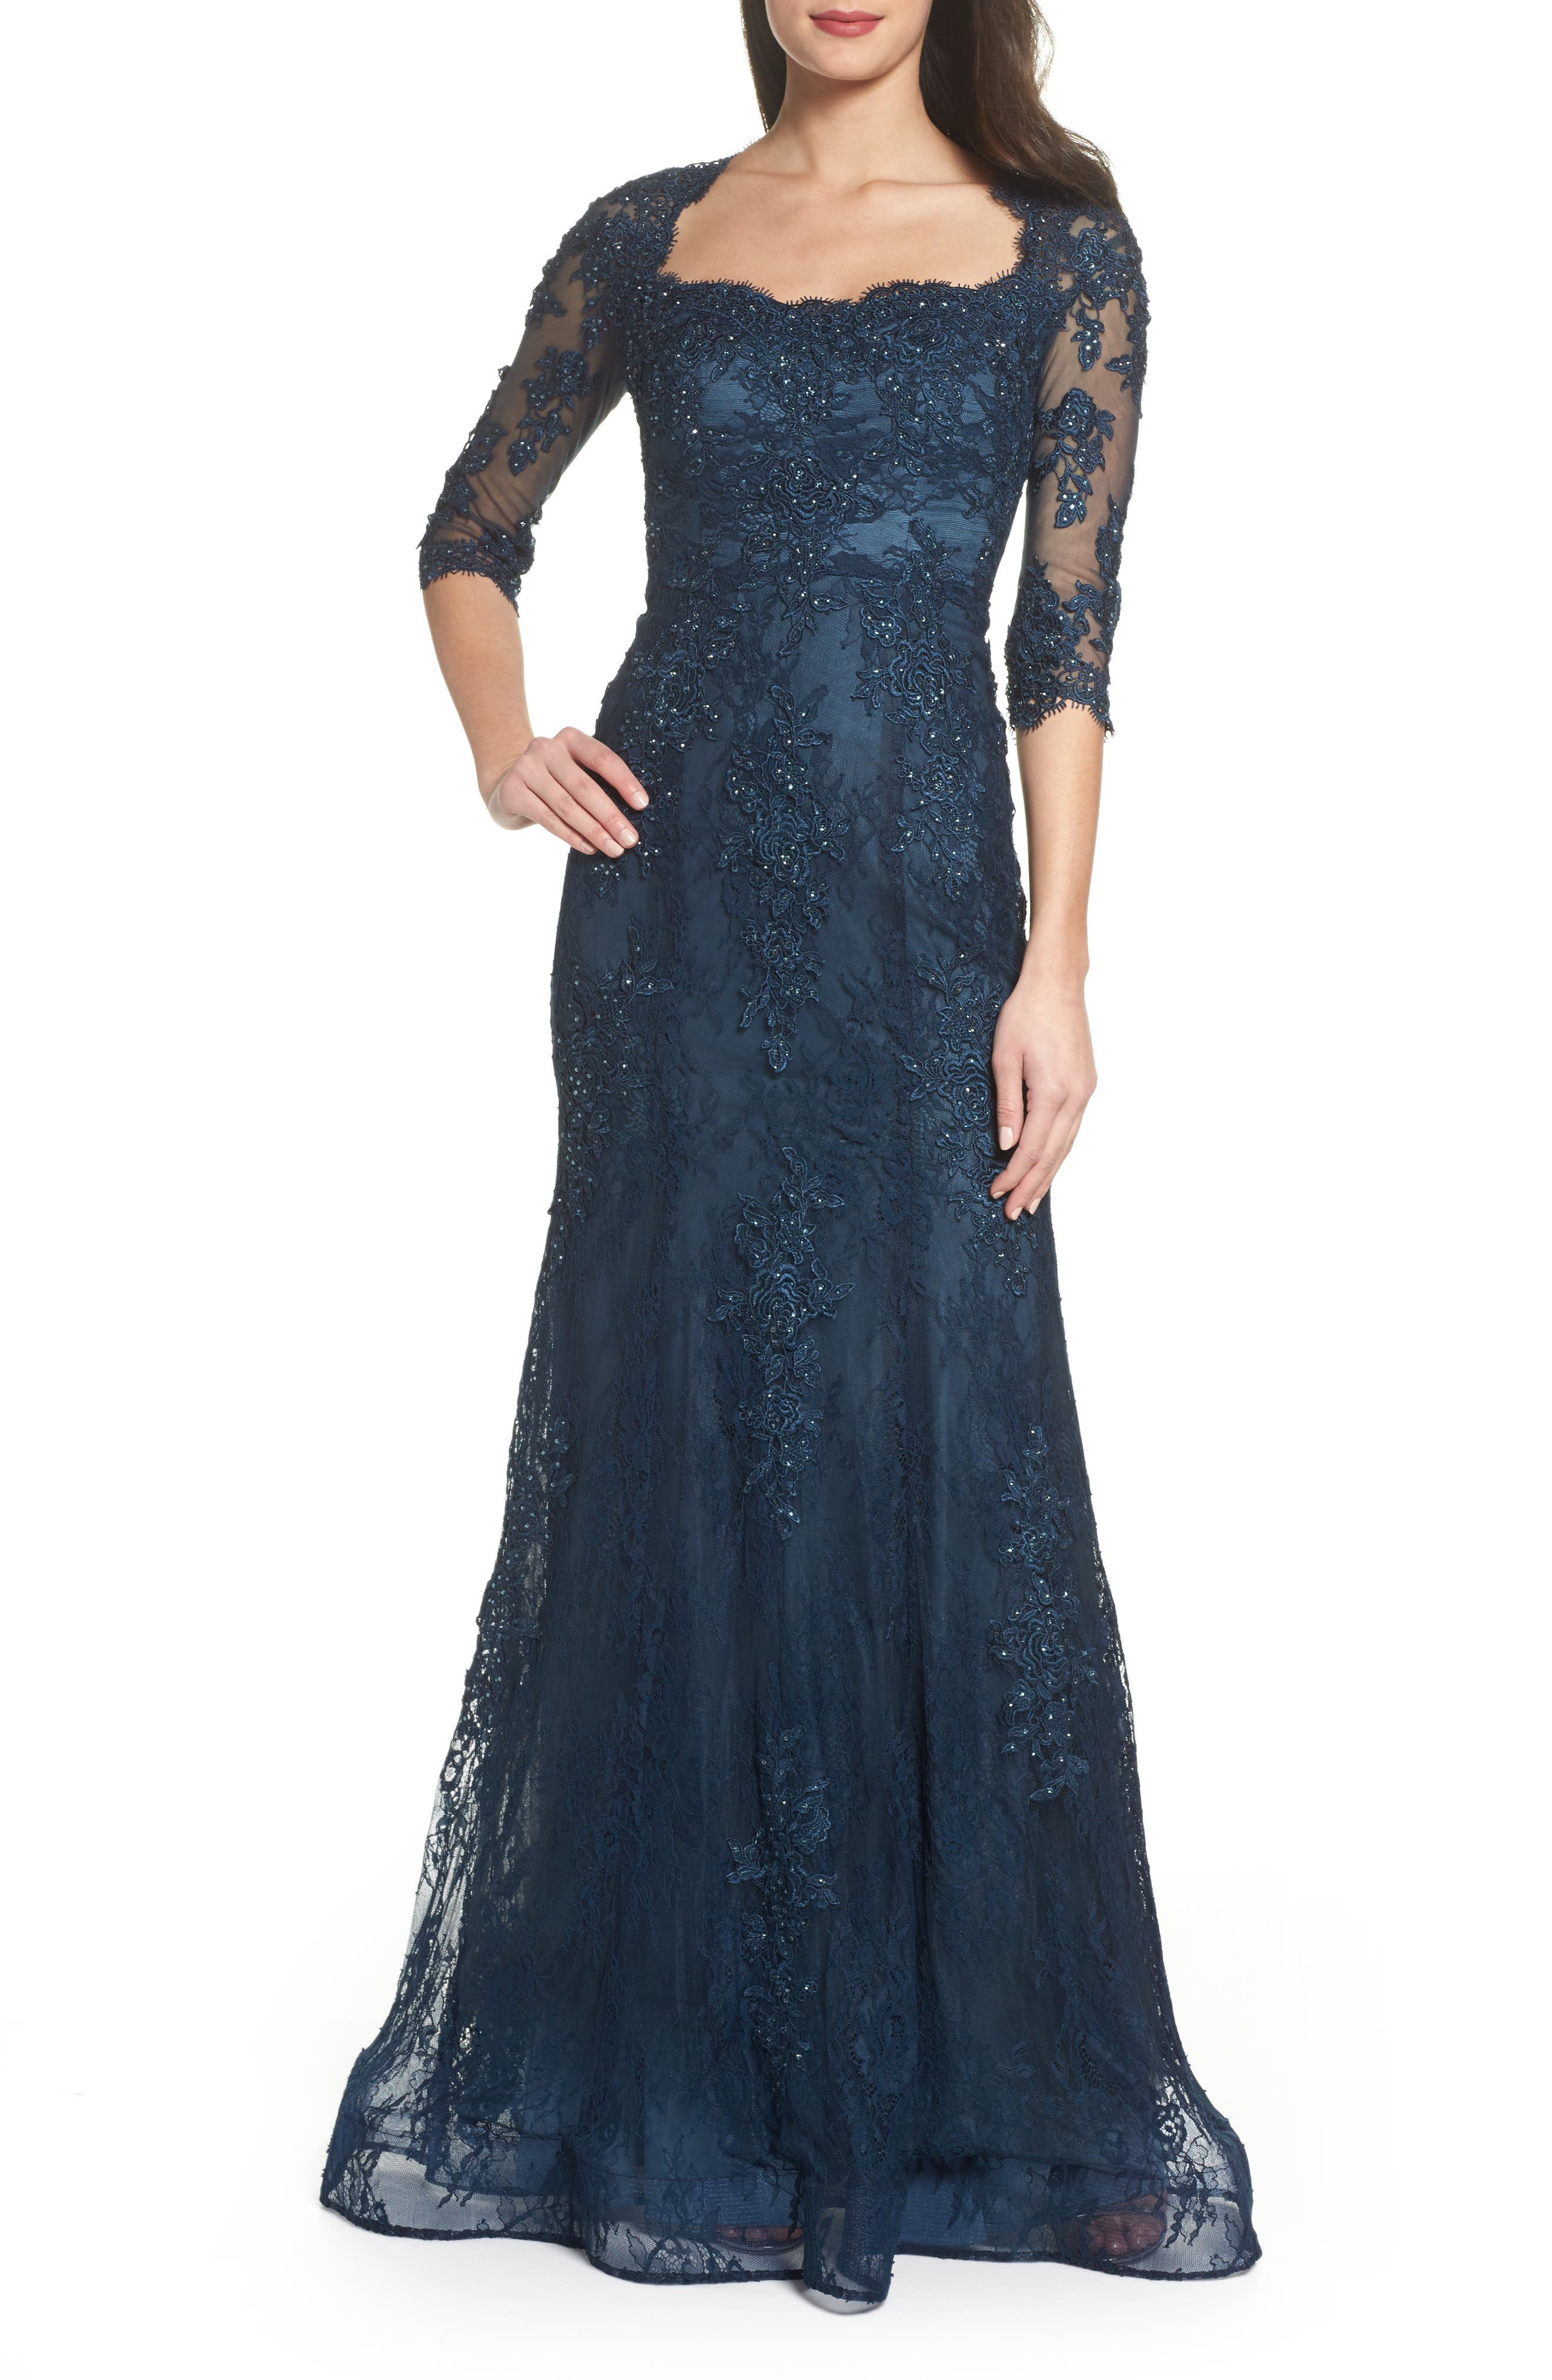 Alternate Image 1 Selected - La Femme Beaded Lace A-Line Gown